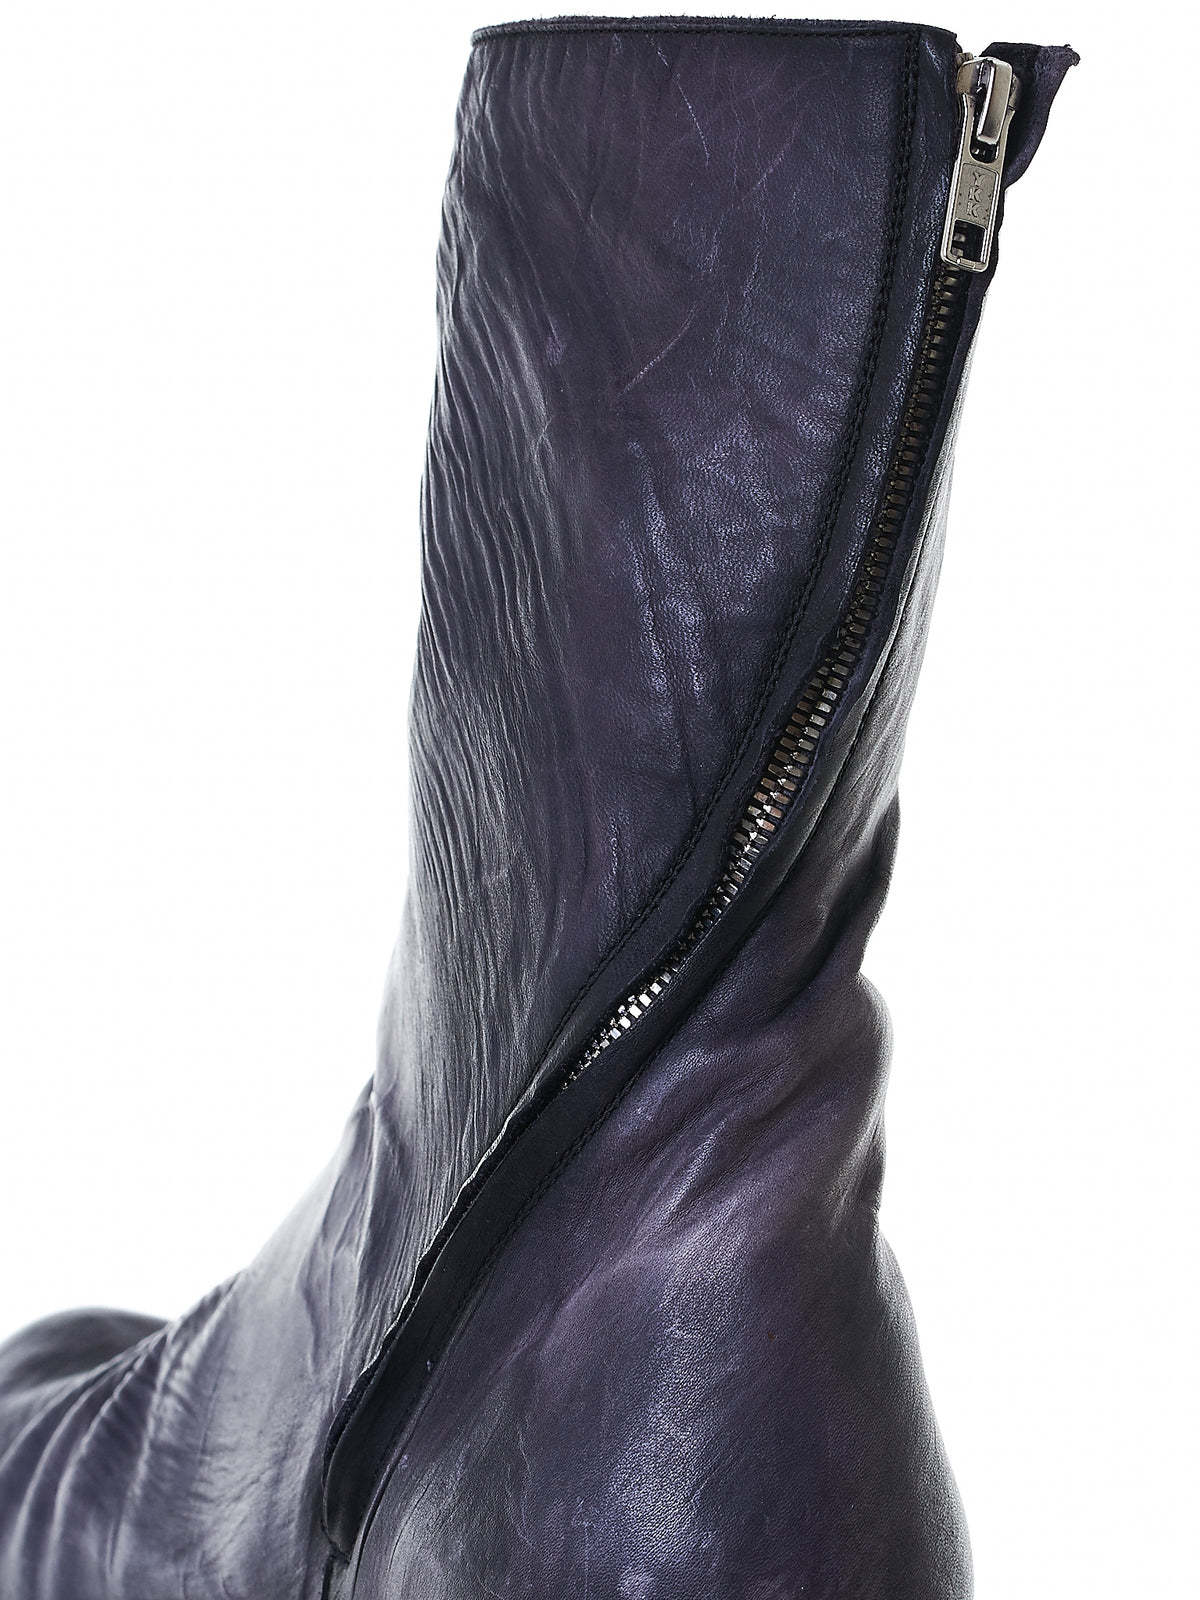 Structural Zip Leather Boots (AW14/15 ST2 CAVALLO NERO)